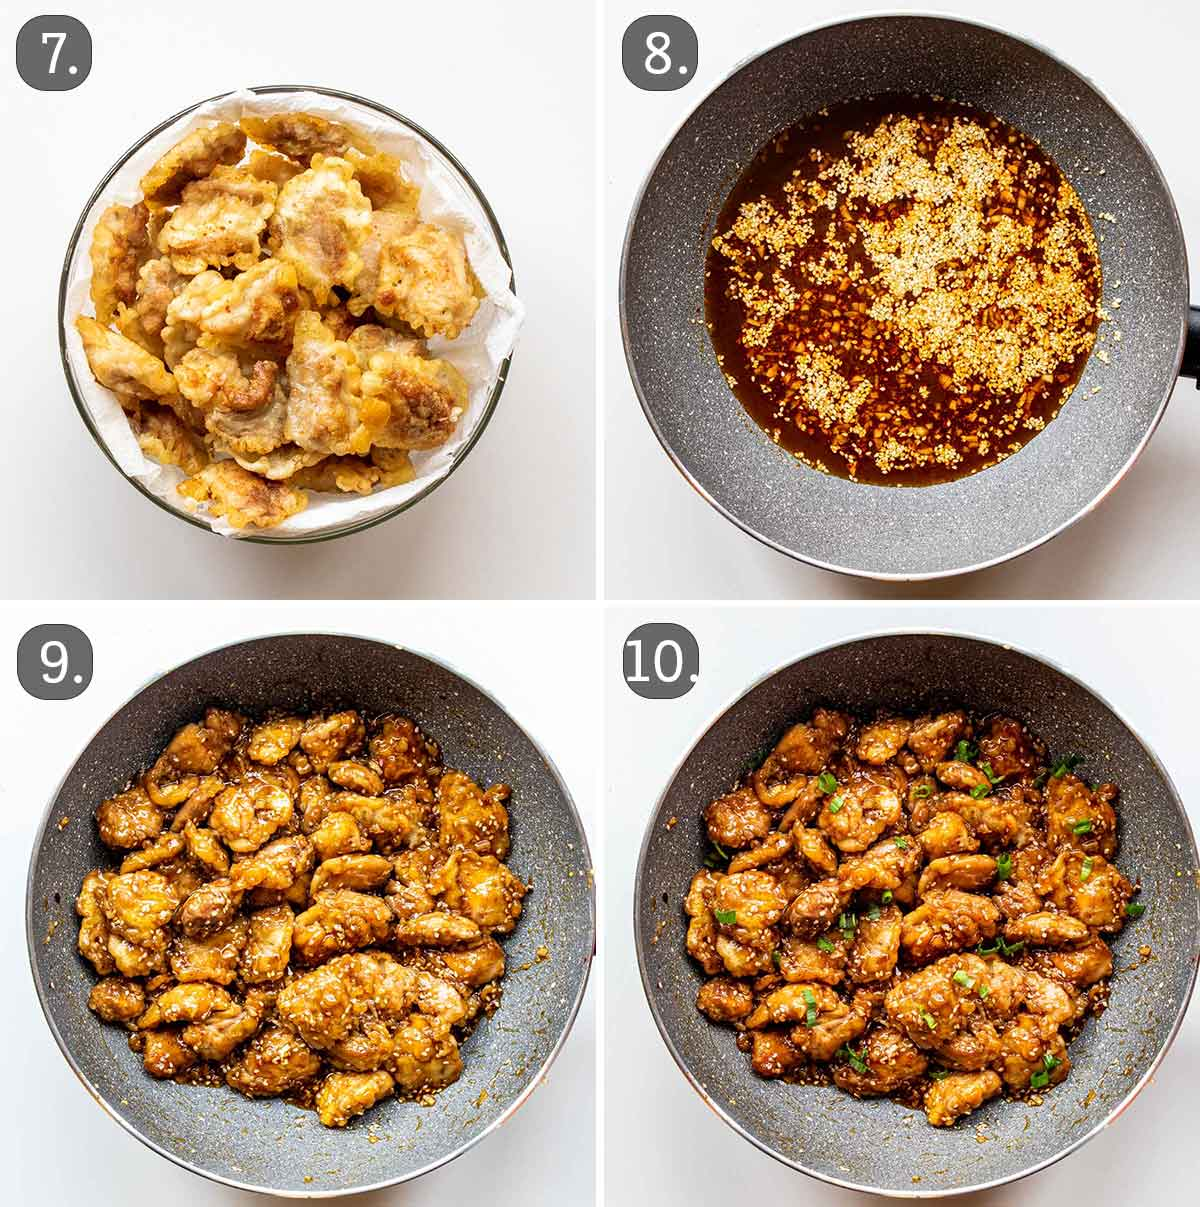 process shots showing how to make sesame chicken.